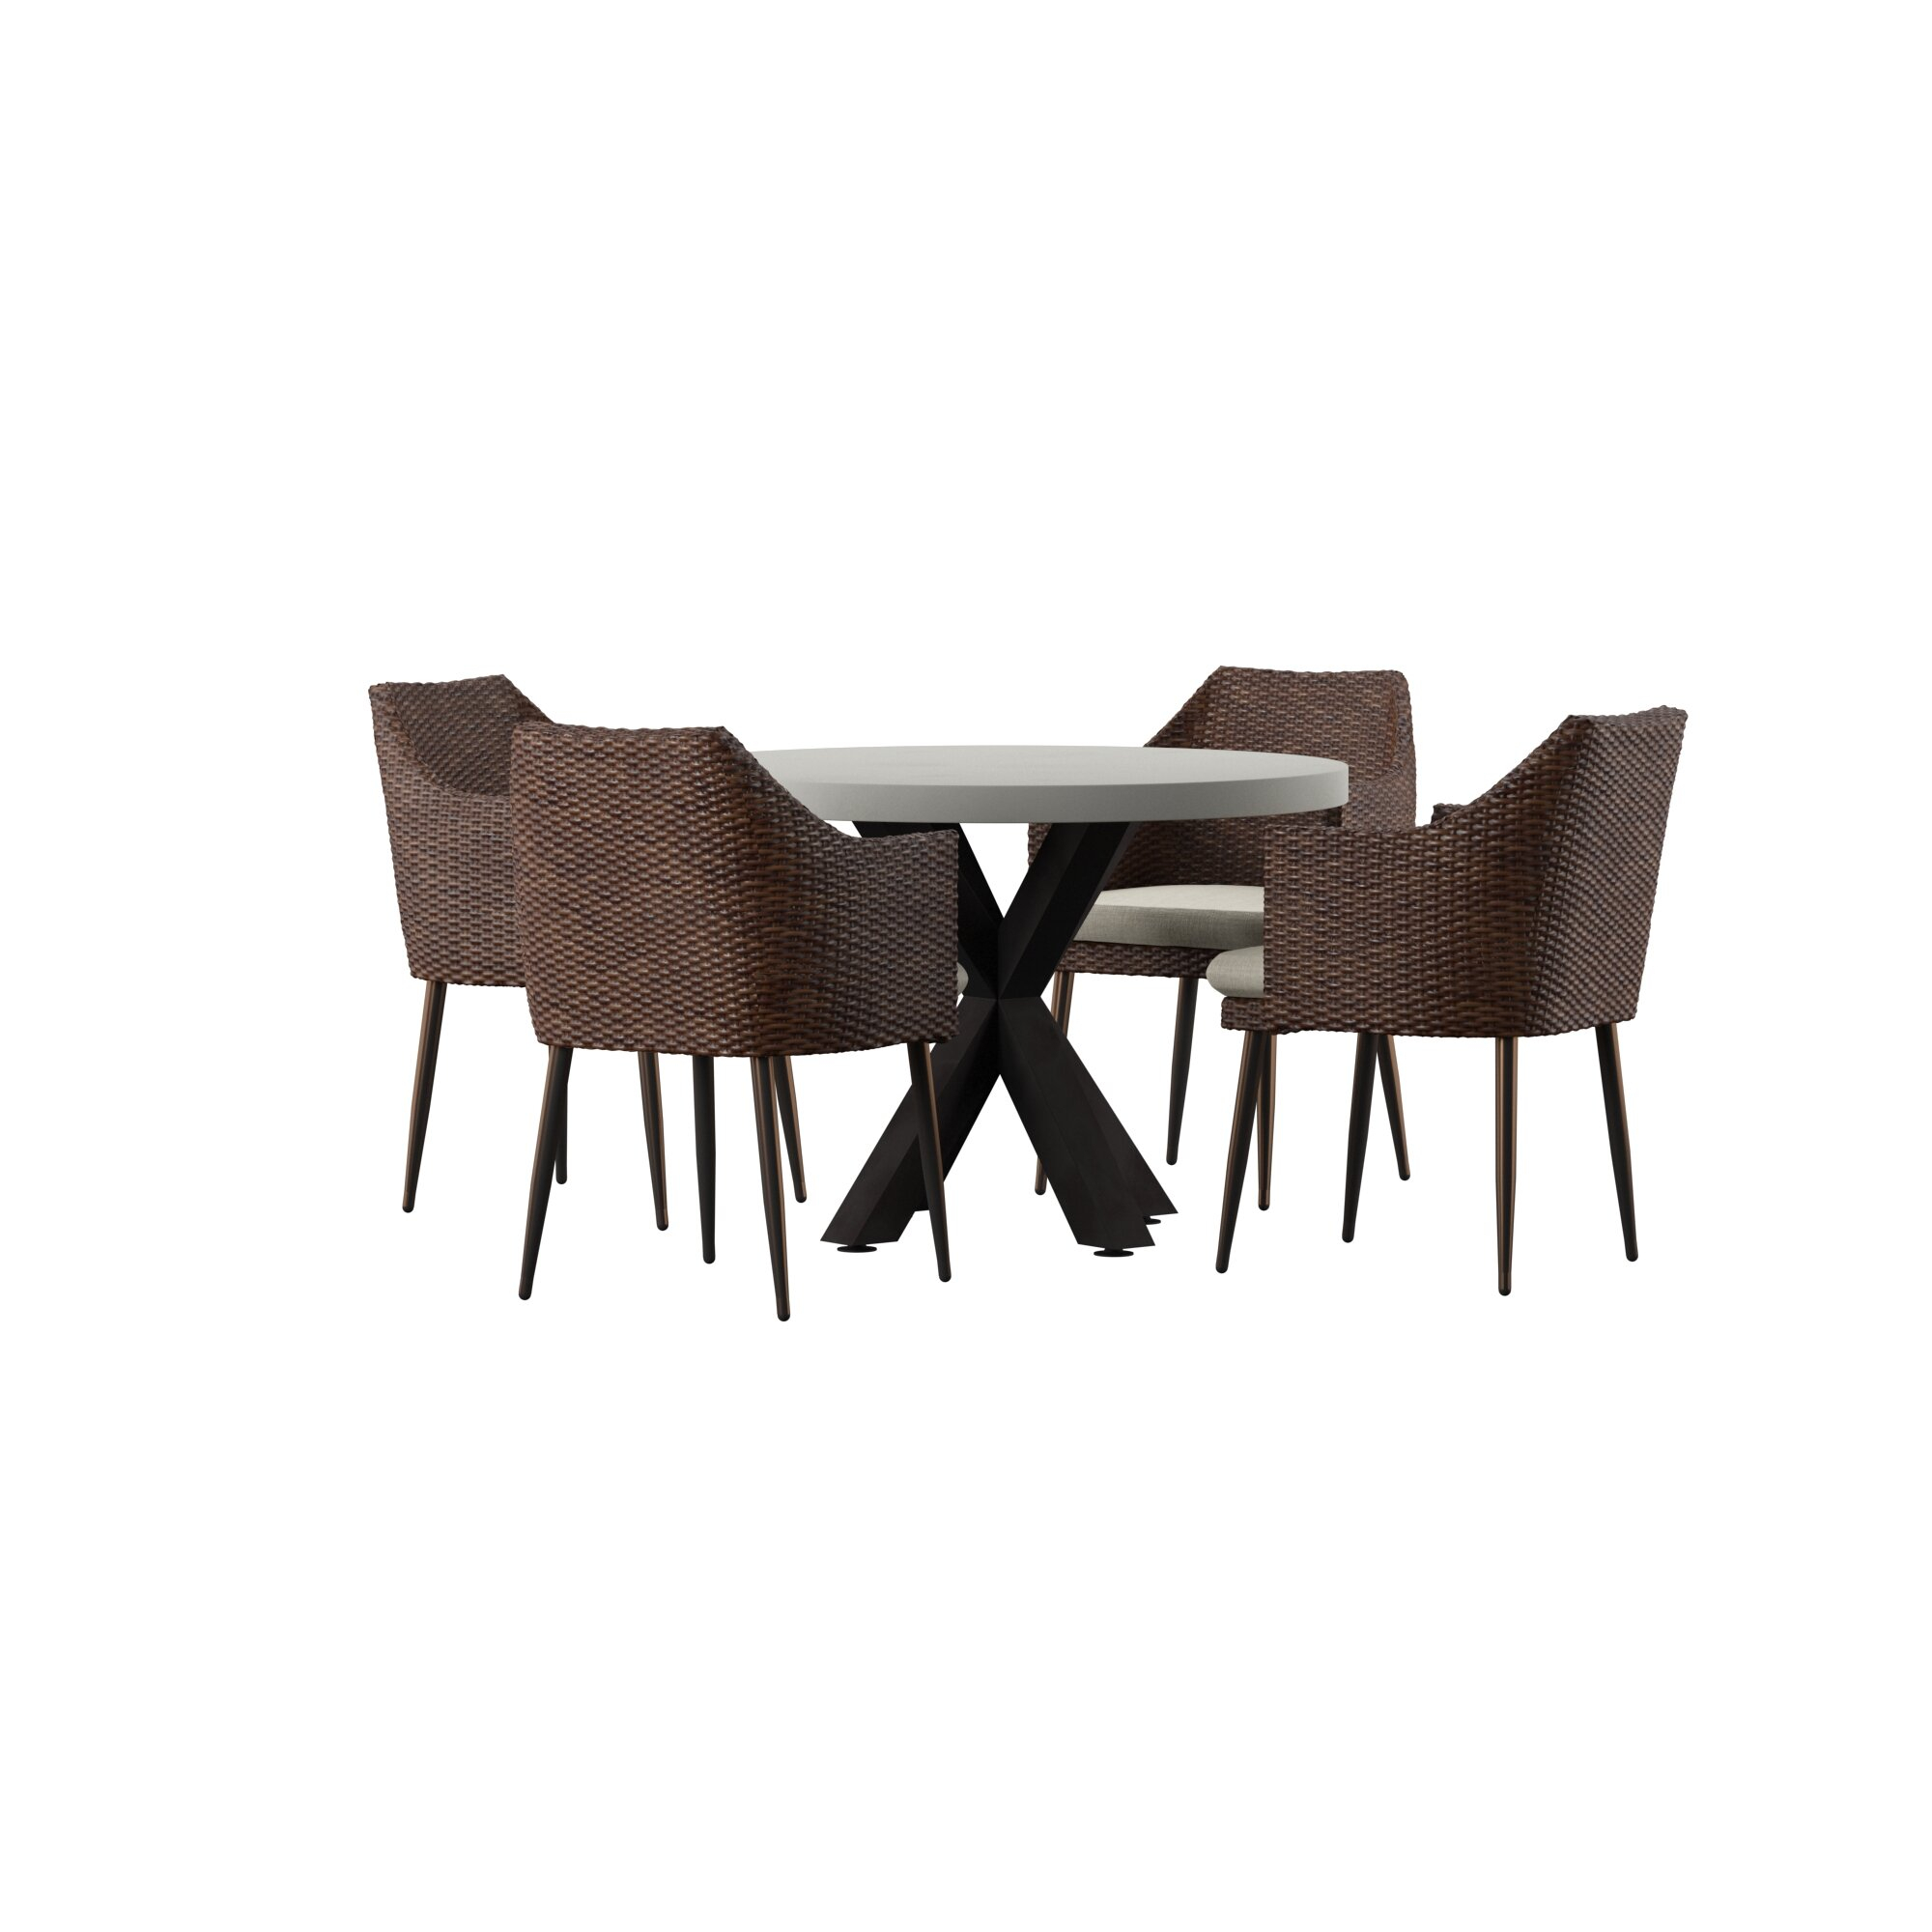 Avery 5 Piece Dining Set With Cushions For Current Avery Rectangular Dining Tables (View 14 of 25)